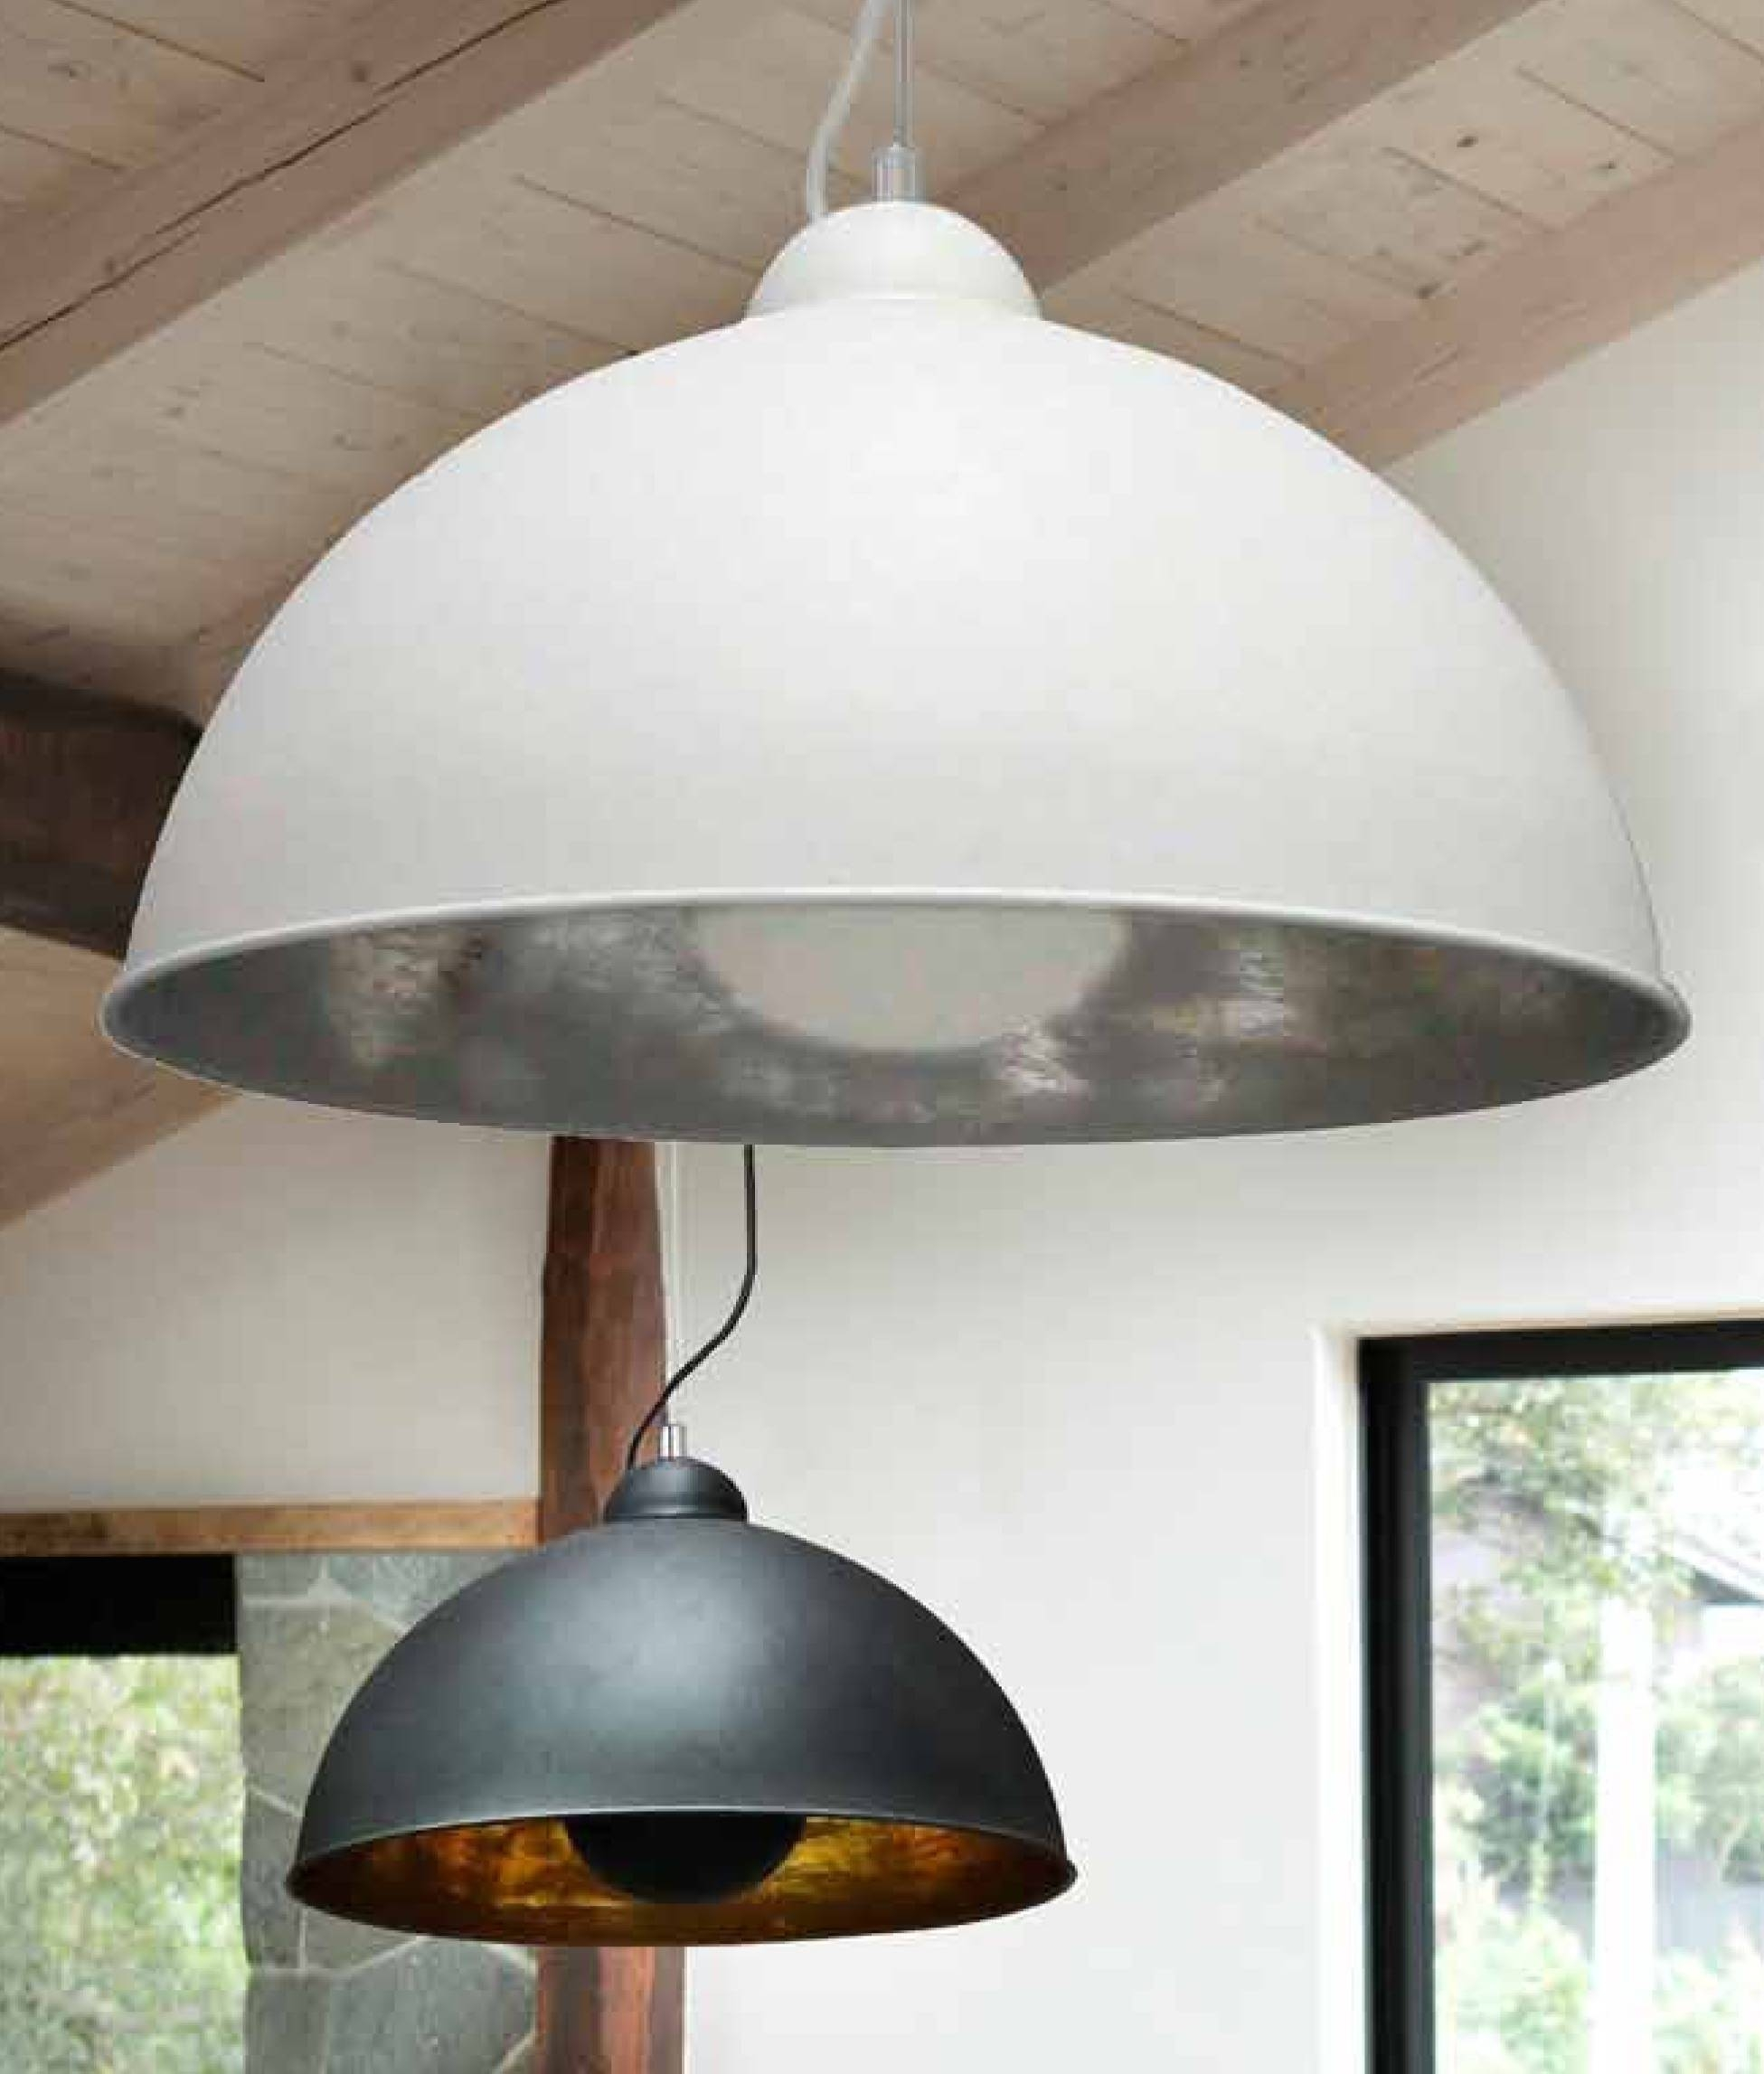 Large Ceiling Pendant In Two Colours With A Wire Suspension And with regard to Large Dome Pendant Lights (Image 9 of 15)